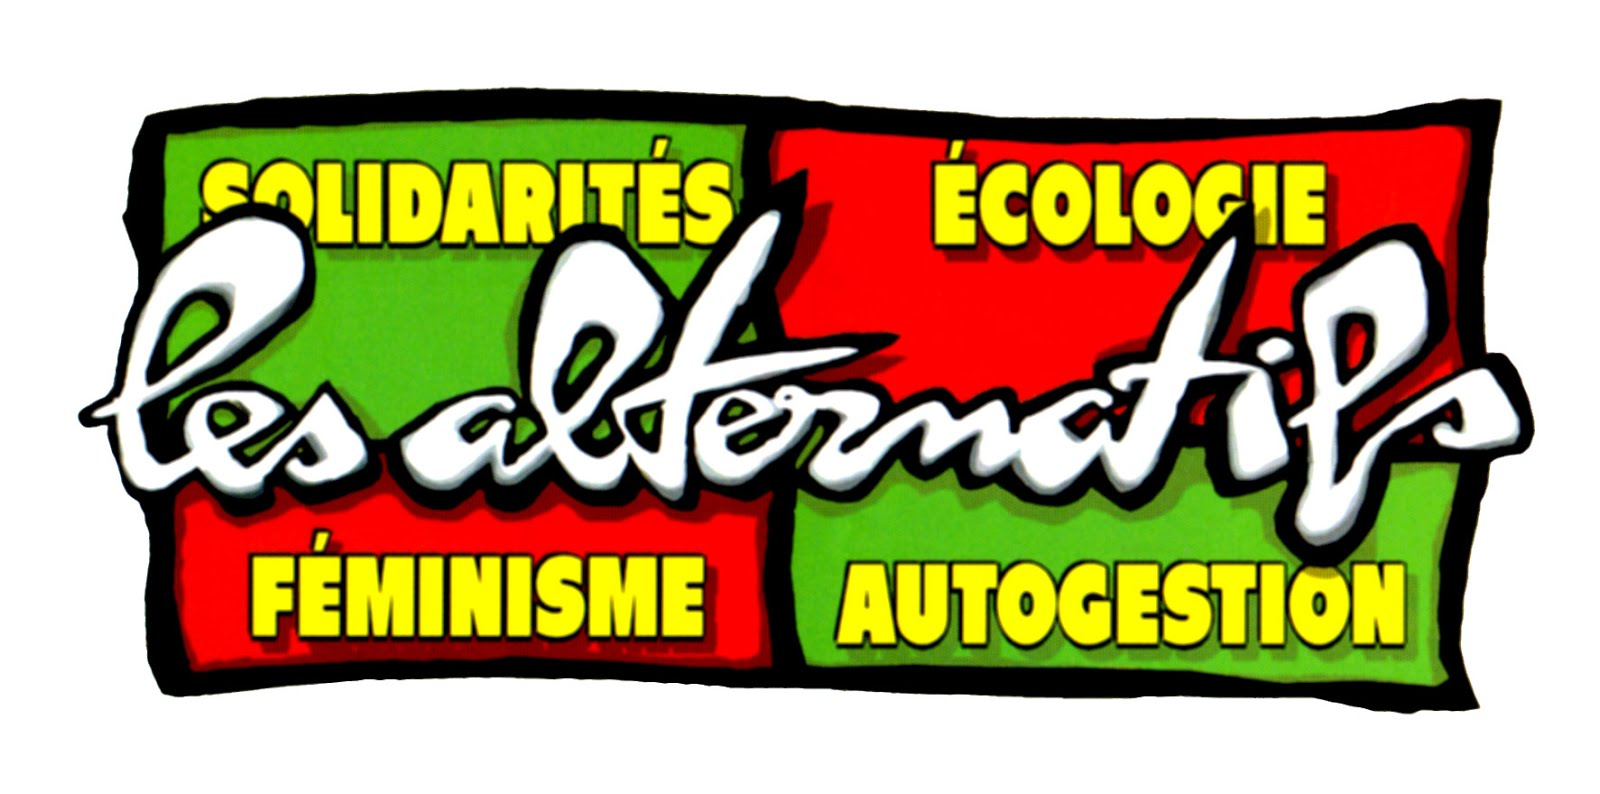 Les Alternatifs - archives